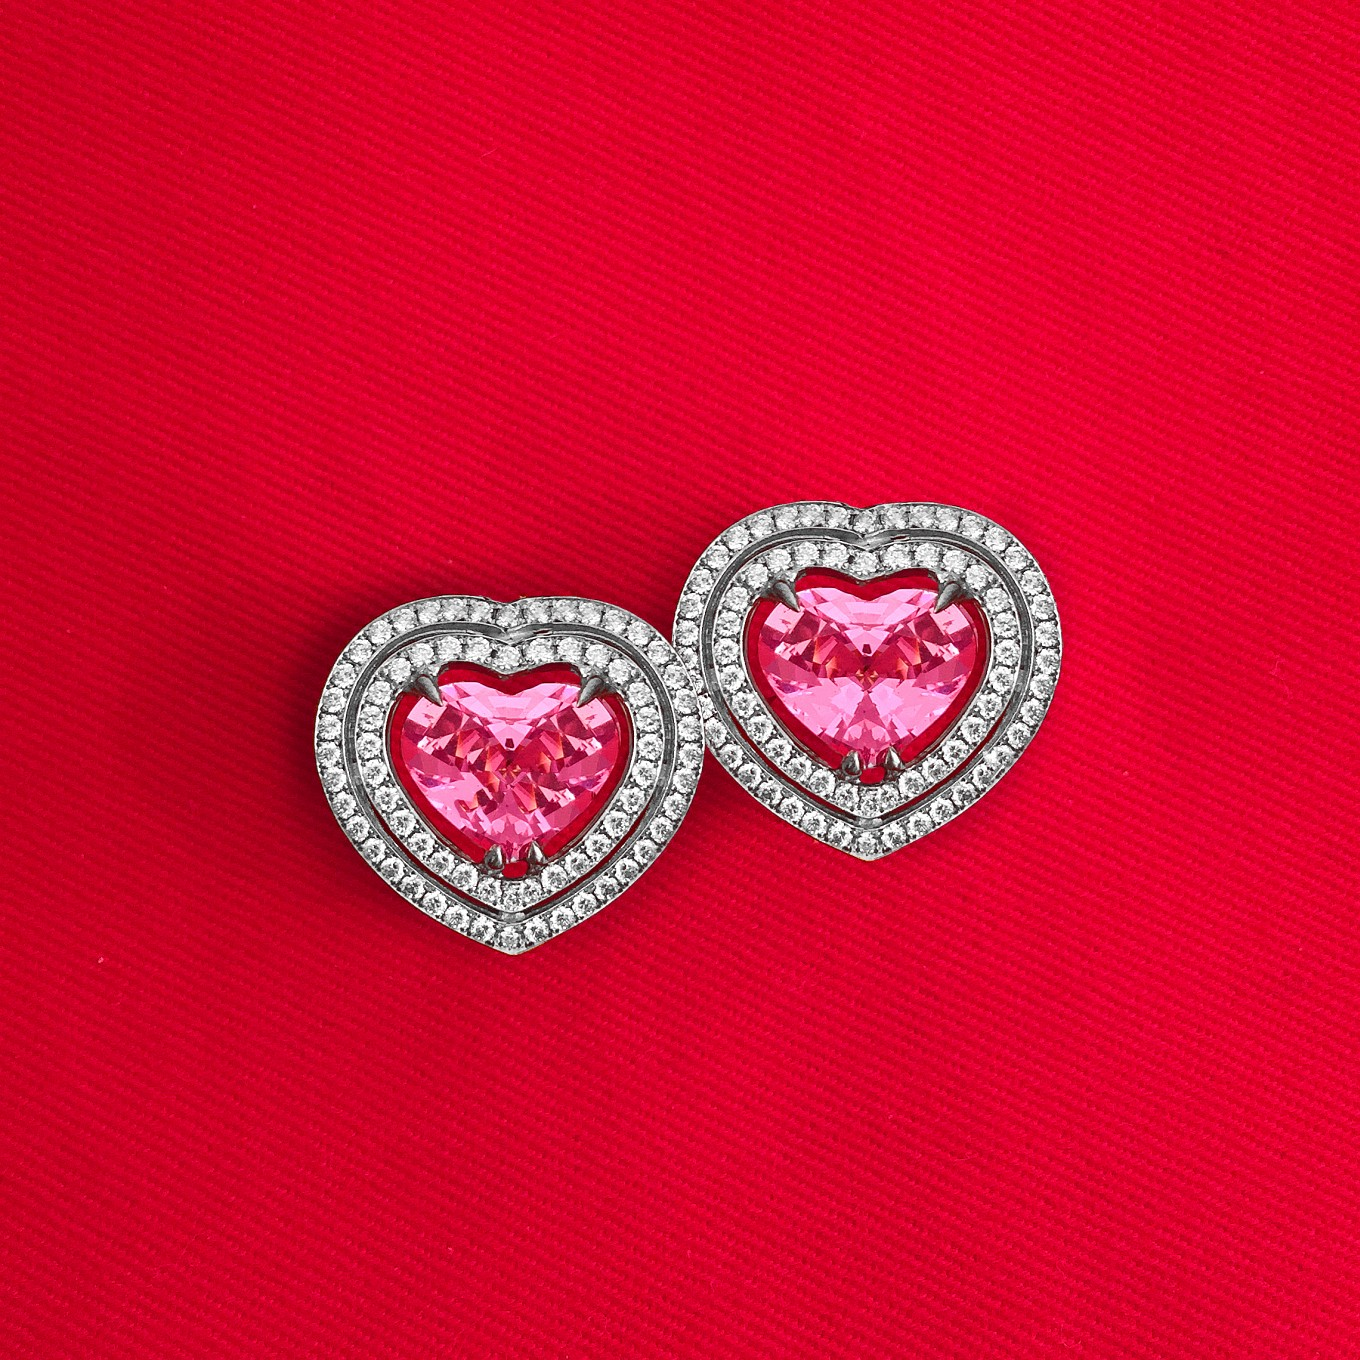 Pink Spinel & Diamond earrings - price on request.